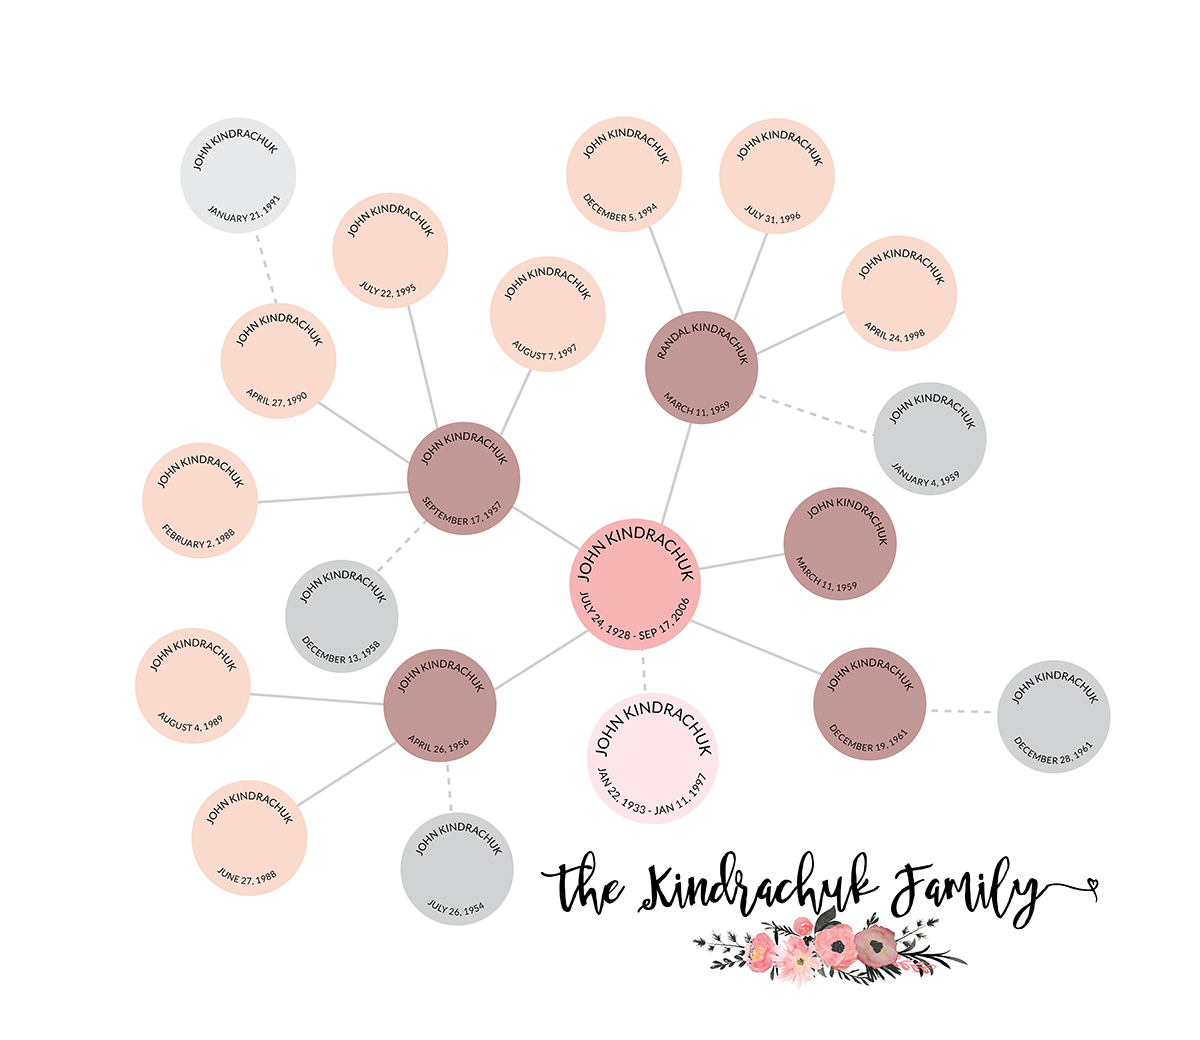 Custom family tree design-02